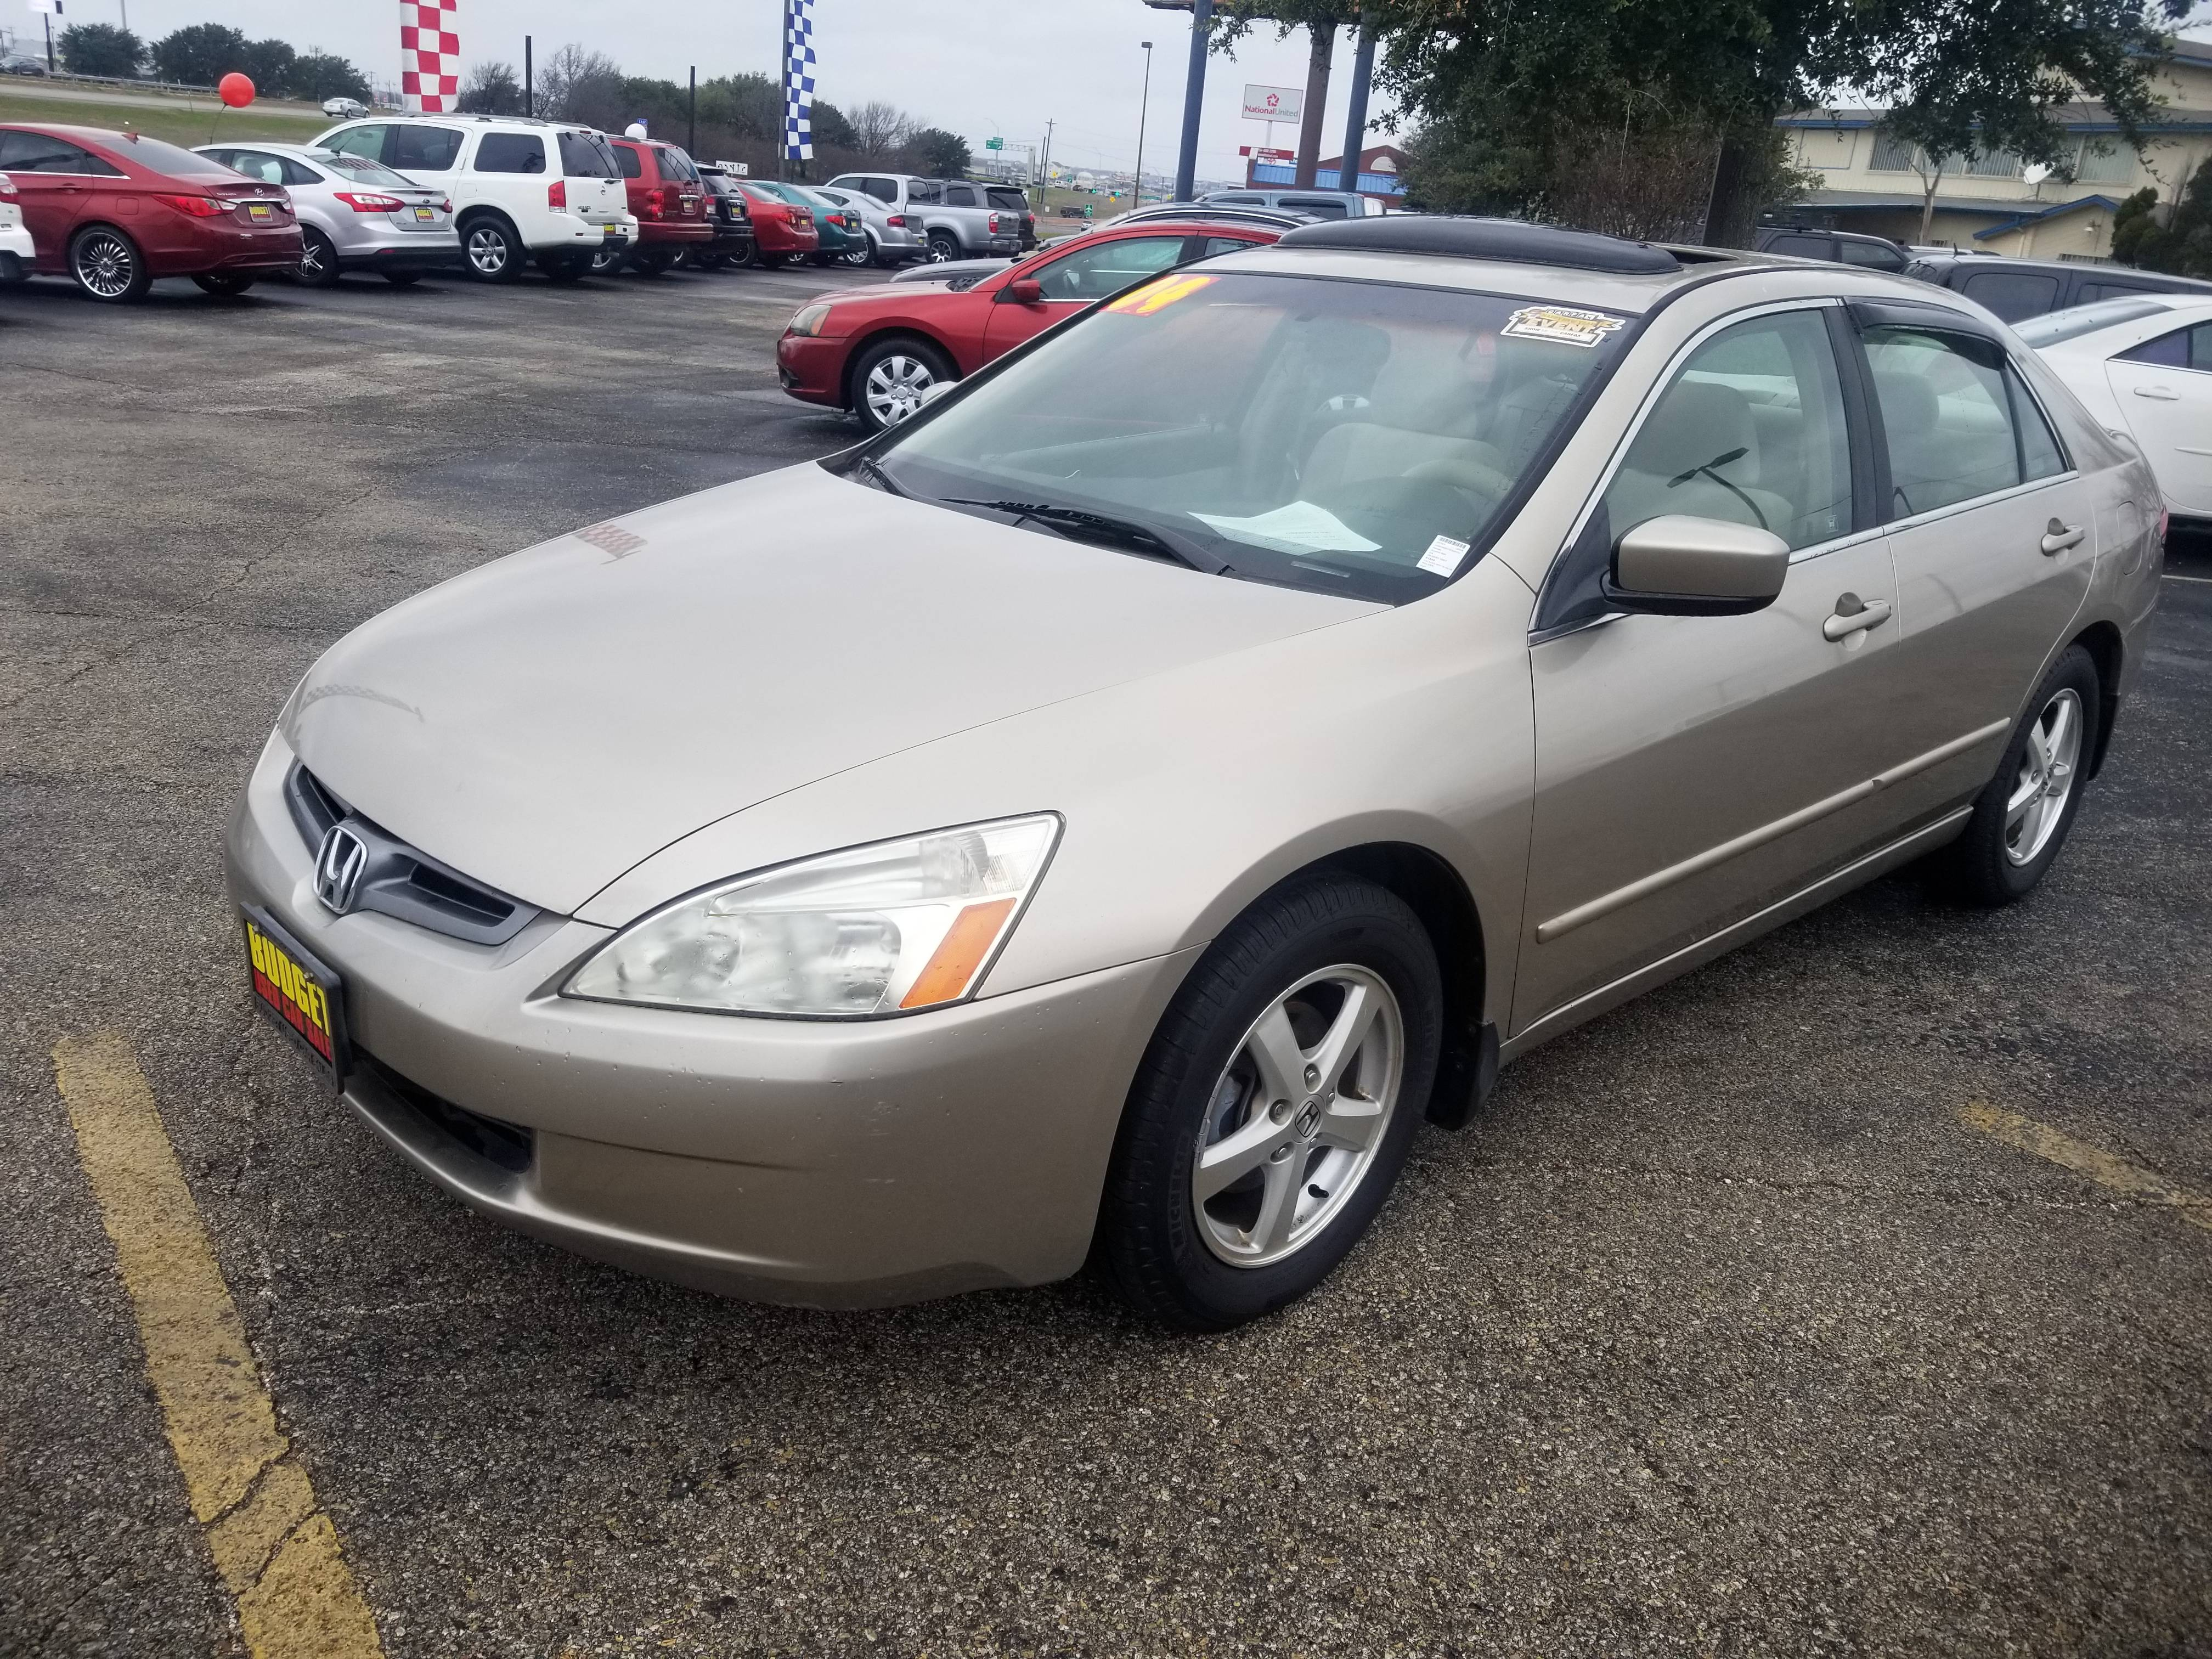 Used 2004 Honda Accord Sdn EX for sale in KILLEEN   25161   BUDGET USED CAR SALES, LP